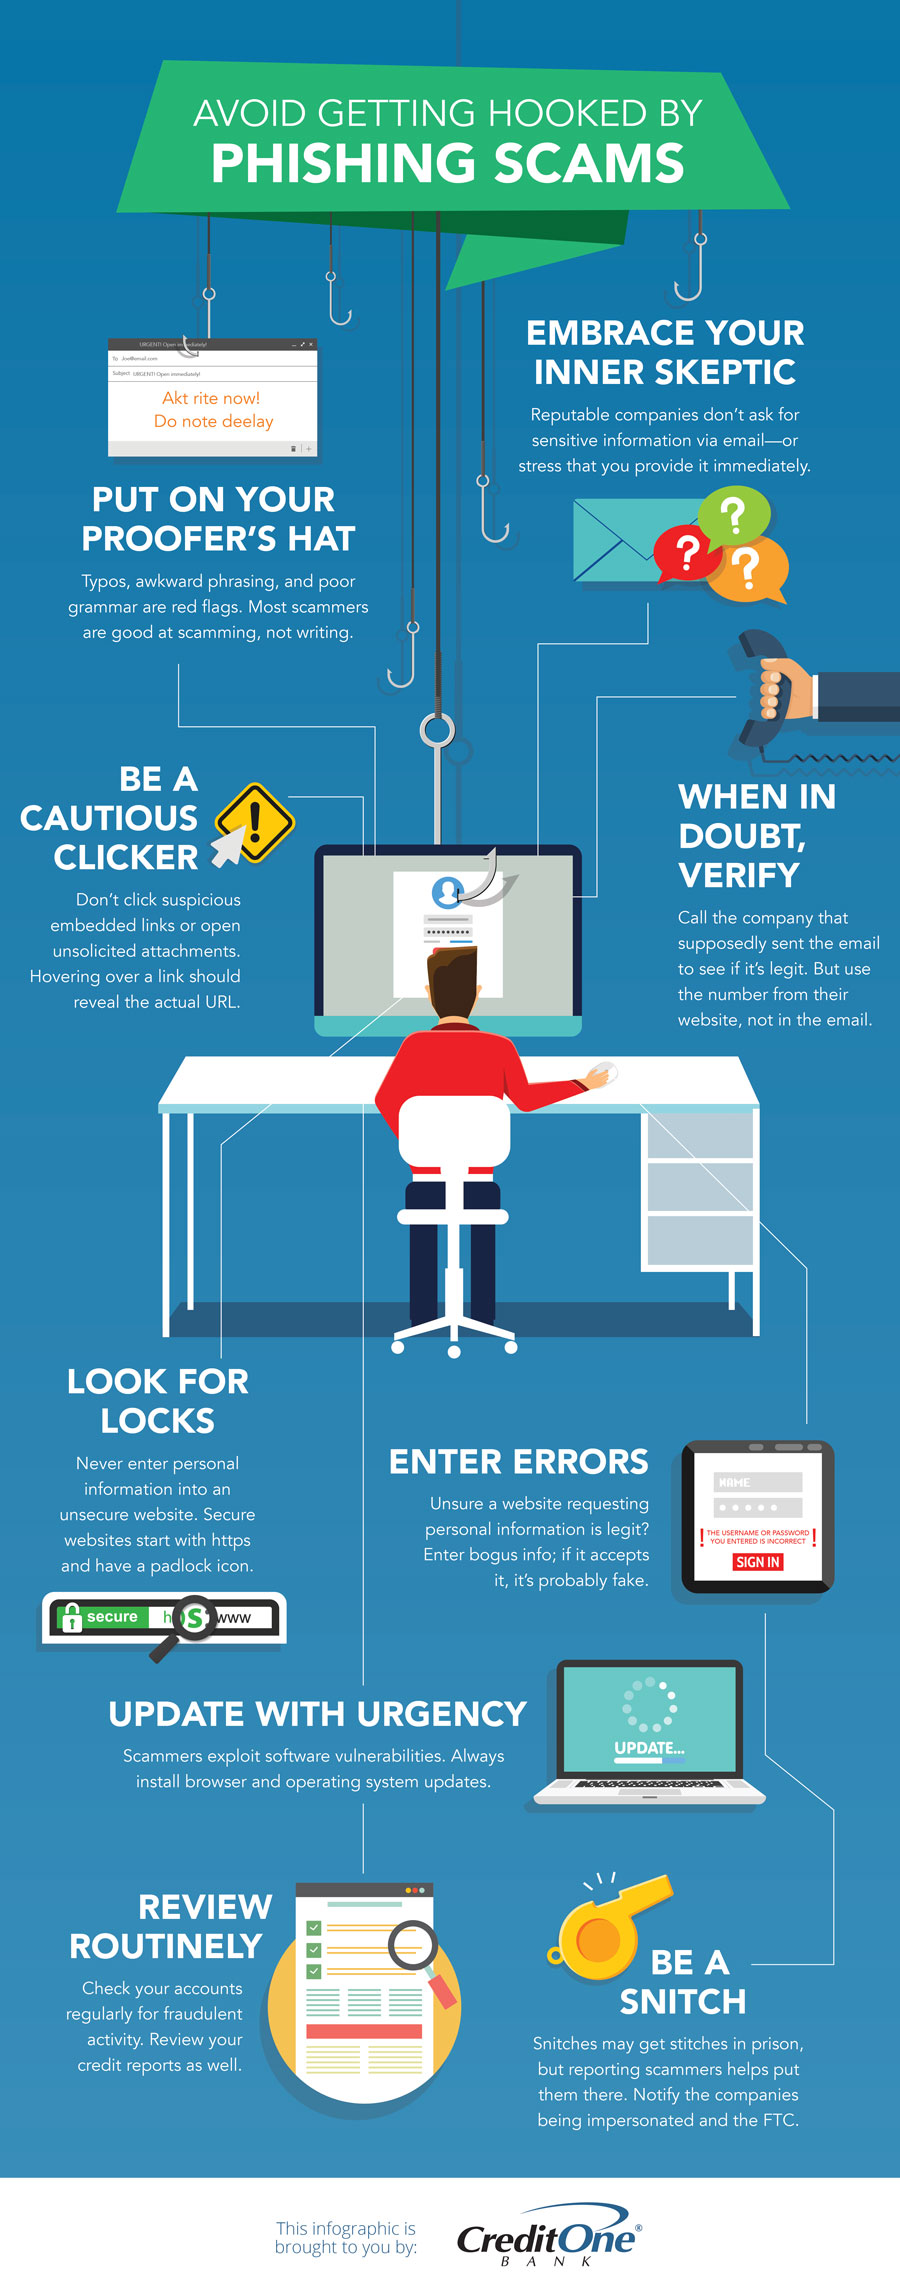 How to Avoid Getting Phished [Infographic]